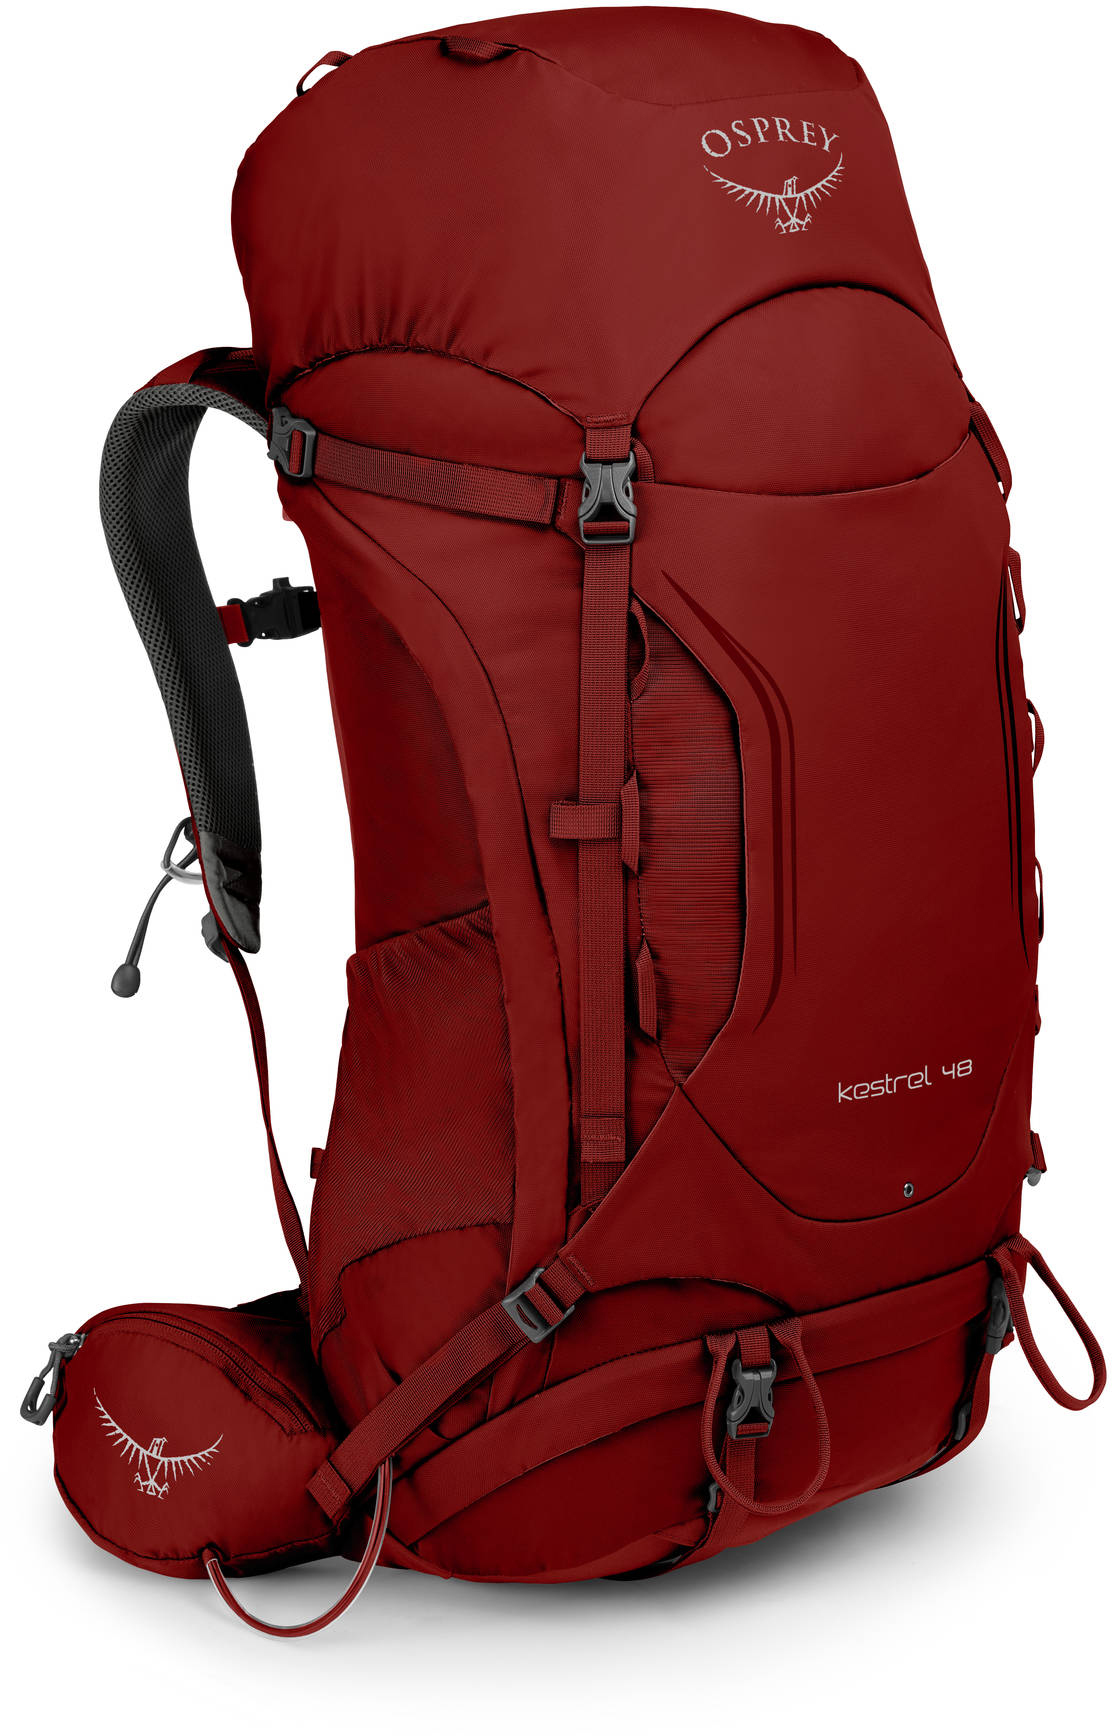 Kestrel Рюкзак туристический Osprey Kestrel 48 Rogue Red (2019) Kestrel_48_S19_Side_Rogue_Red_web.jpg